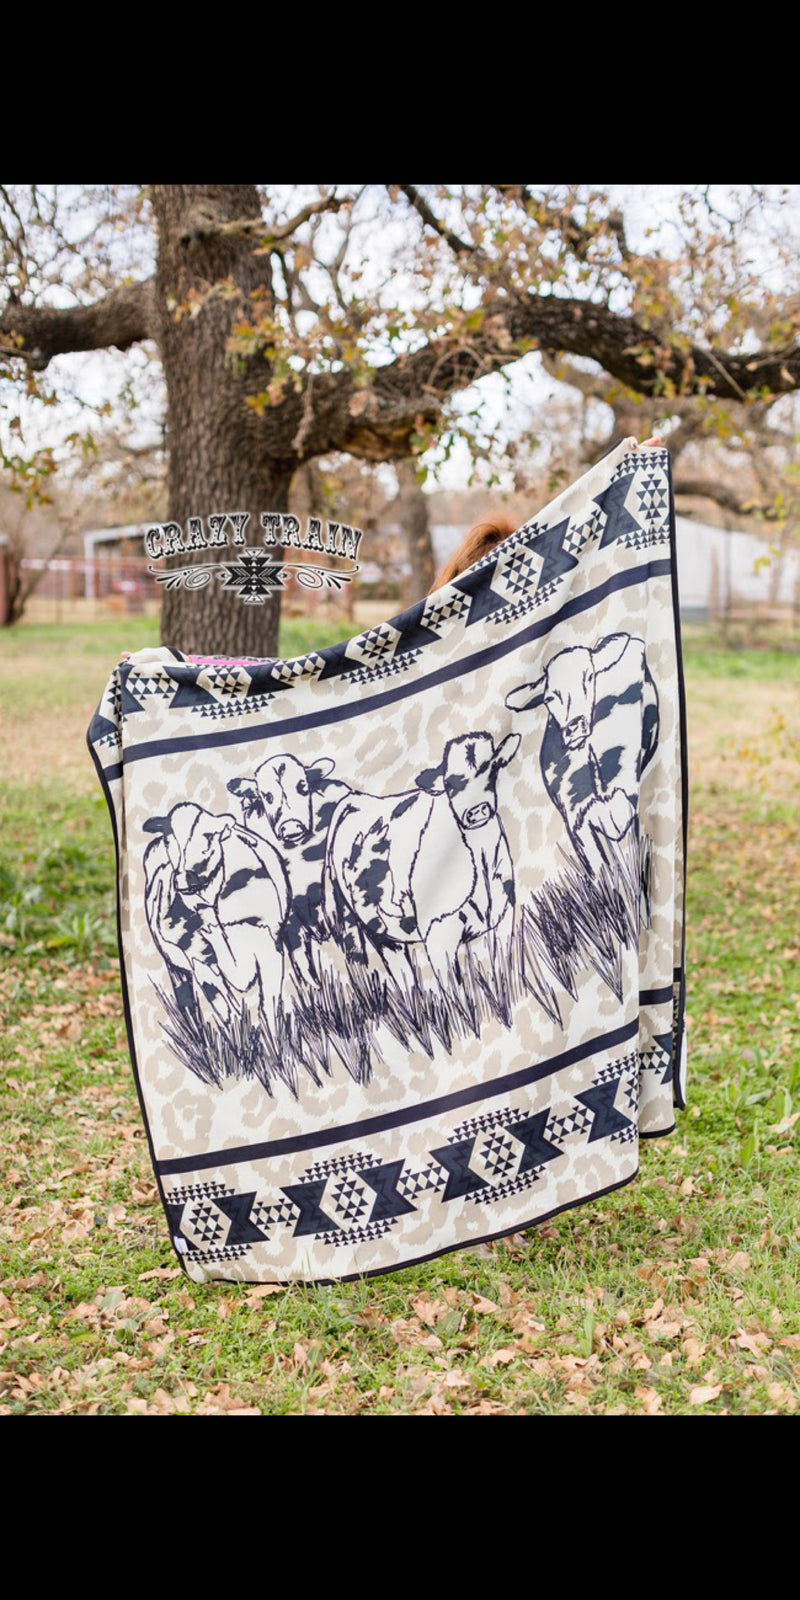 Adult & Kids Cattle Cover Leopard Blanket